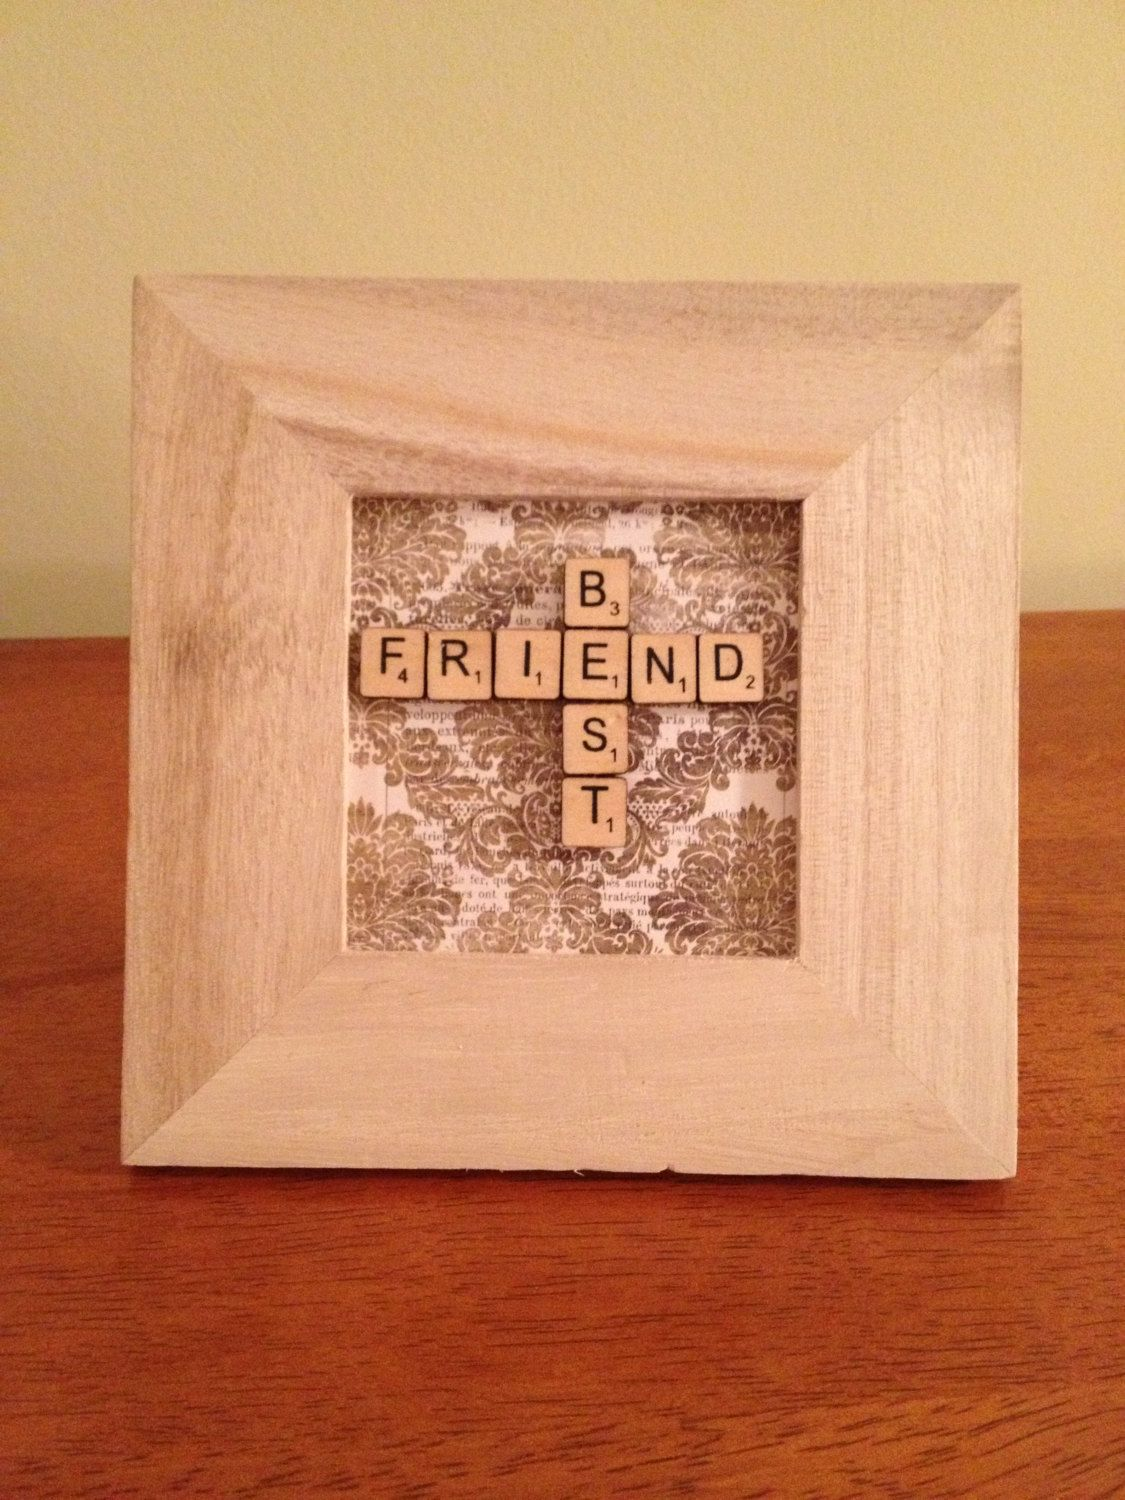 You Could Totally Do This Yourself Its A Cute Gift Idea